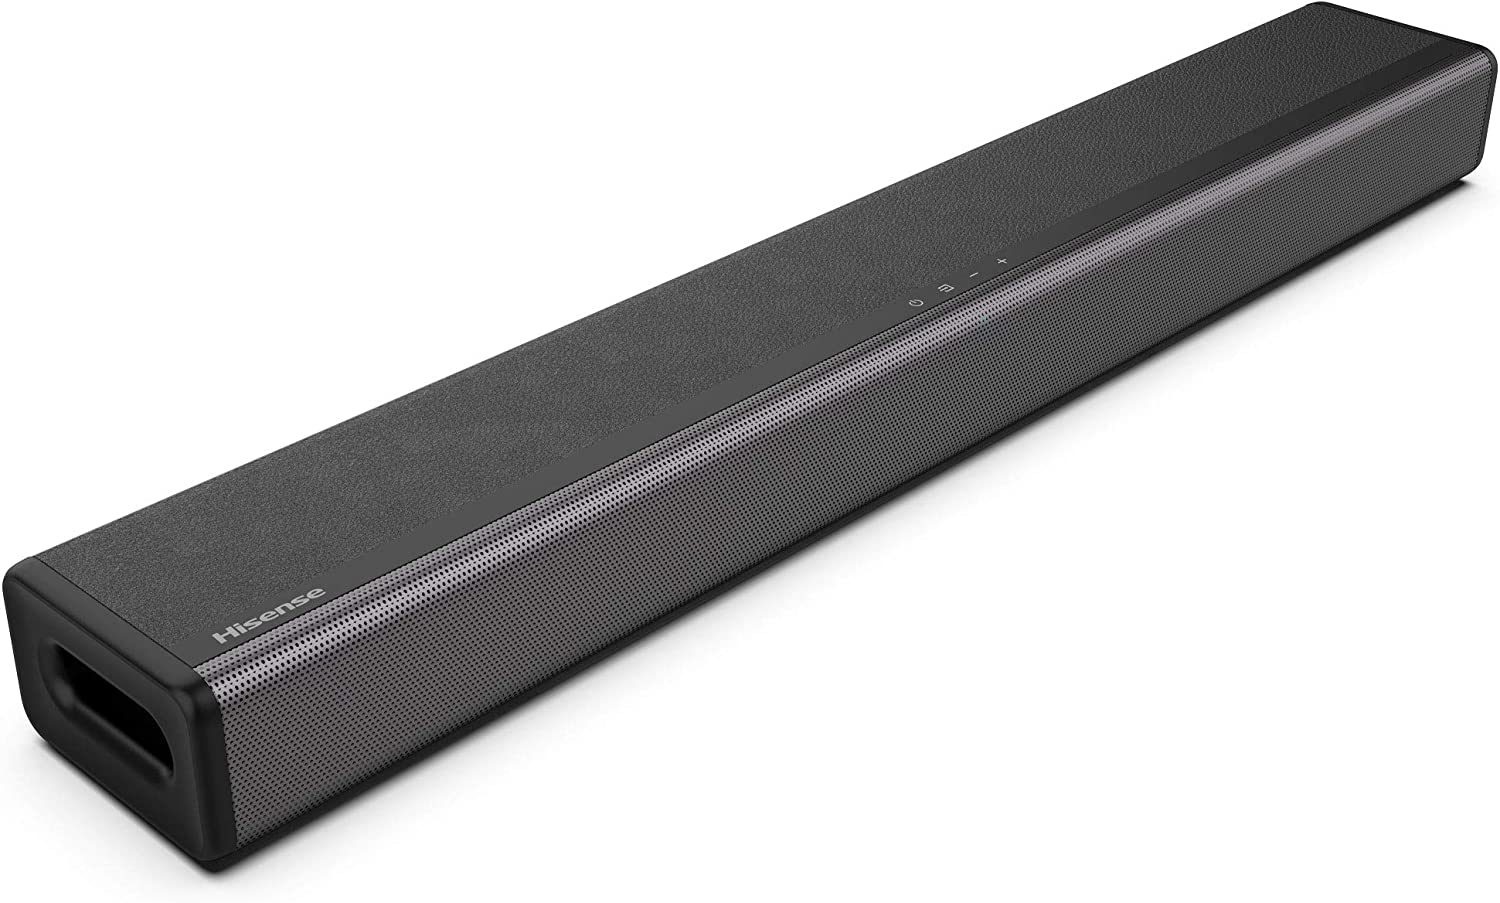 Hisense 2.1 Channel Sound Bar Home Theater System with Bluetooth (Model HS214)